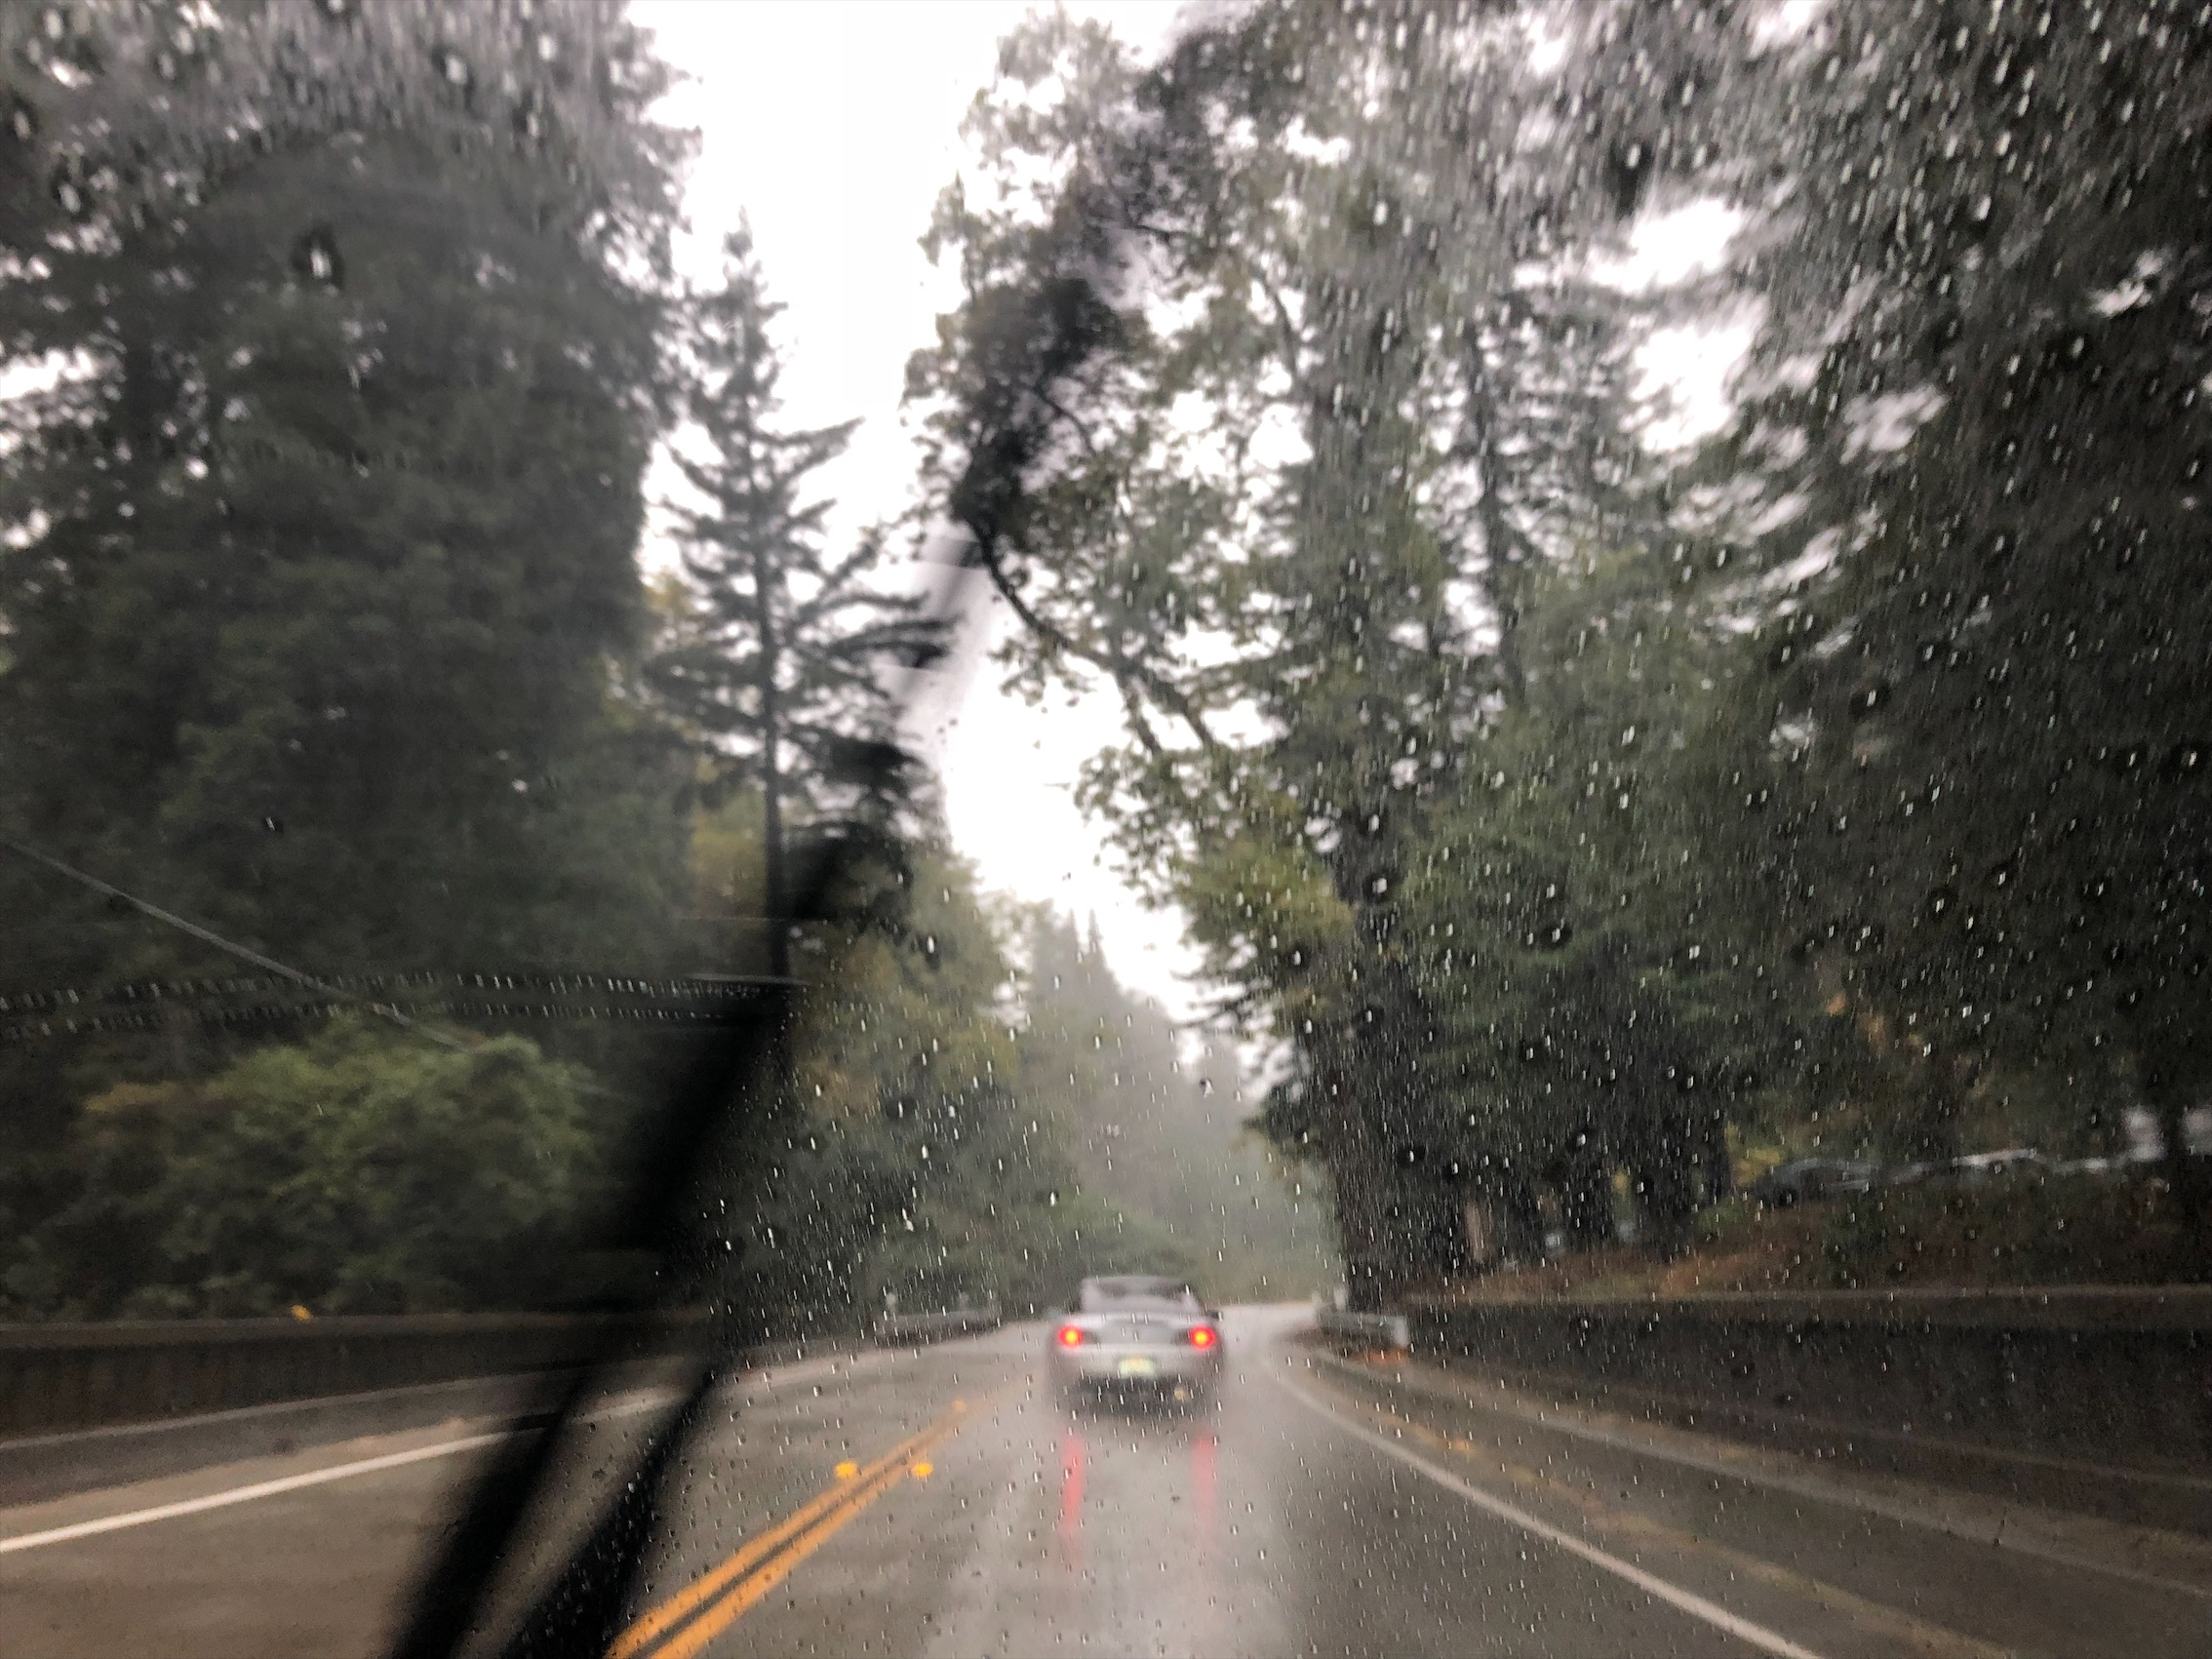 It's kinda scary driving on the 1 in the rain cuz of the cliff and rock slides! Had to dodged a couple of small rocks on the road. My car is low enough for the rocks to make some damage on and under the car so I had to be extra careful.